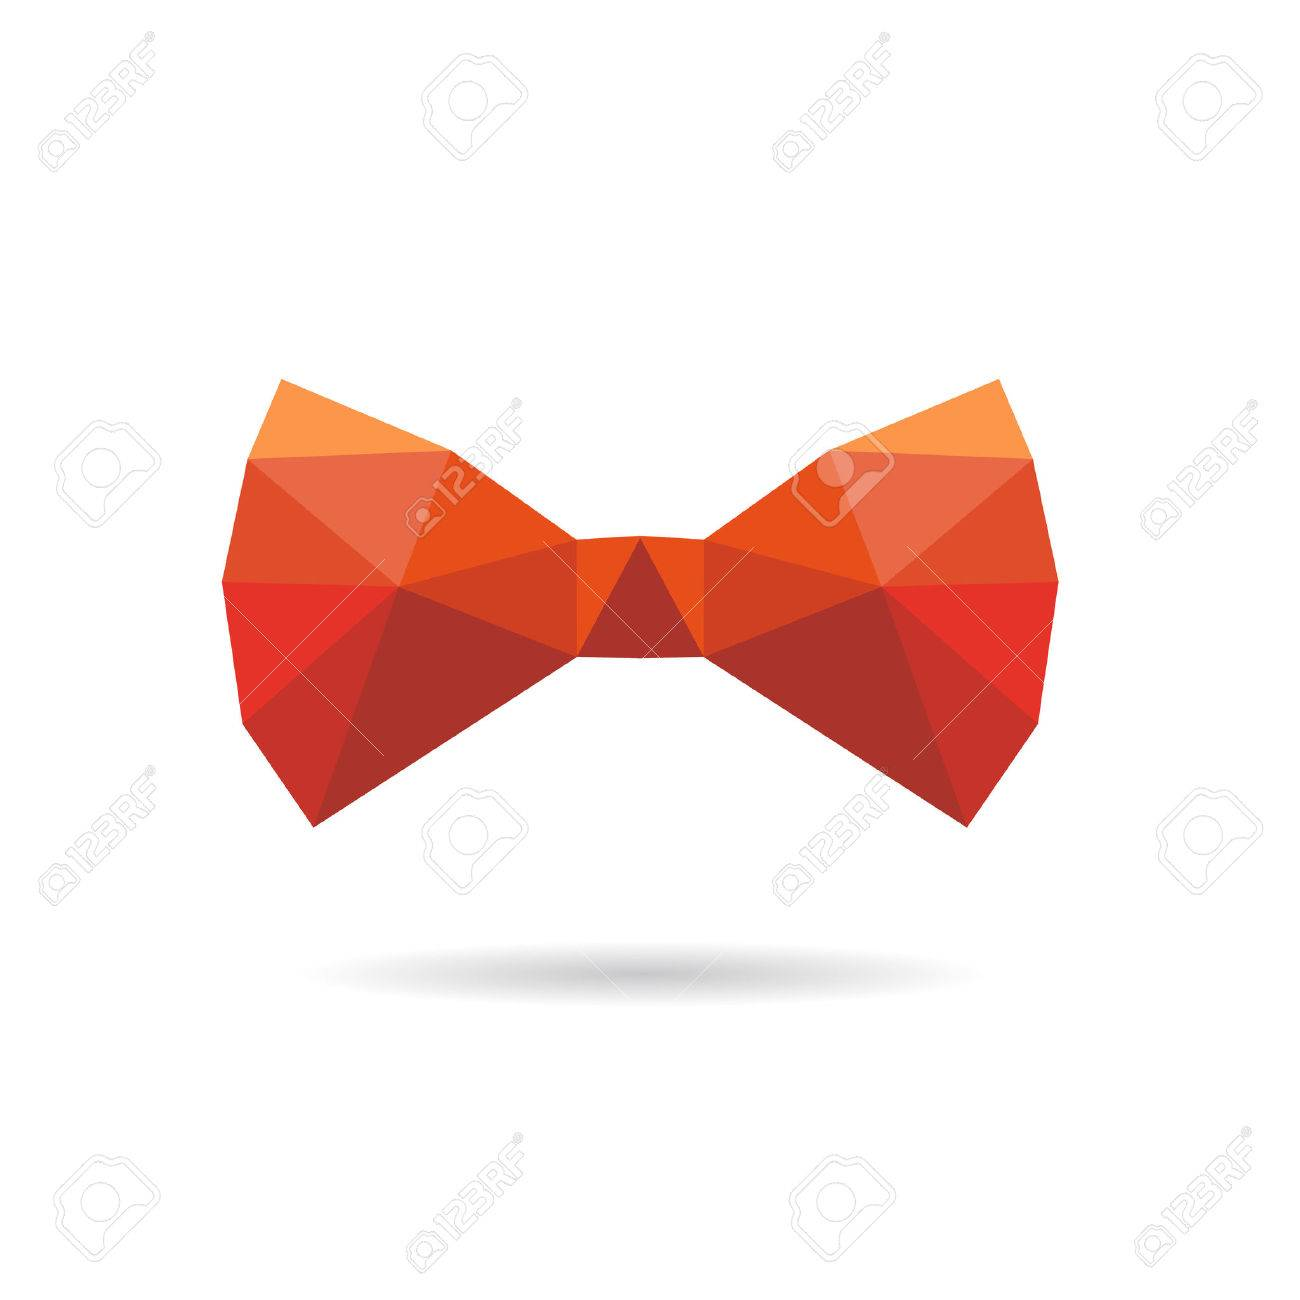 Bowtie Vector Bow tie abstract isolated on a